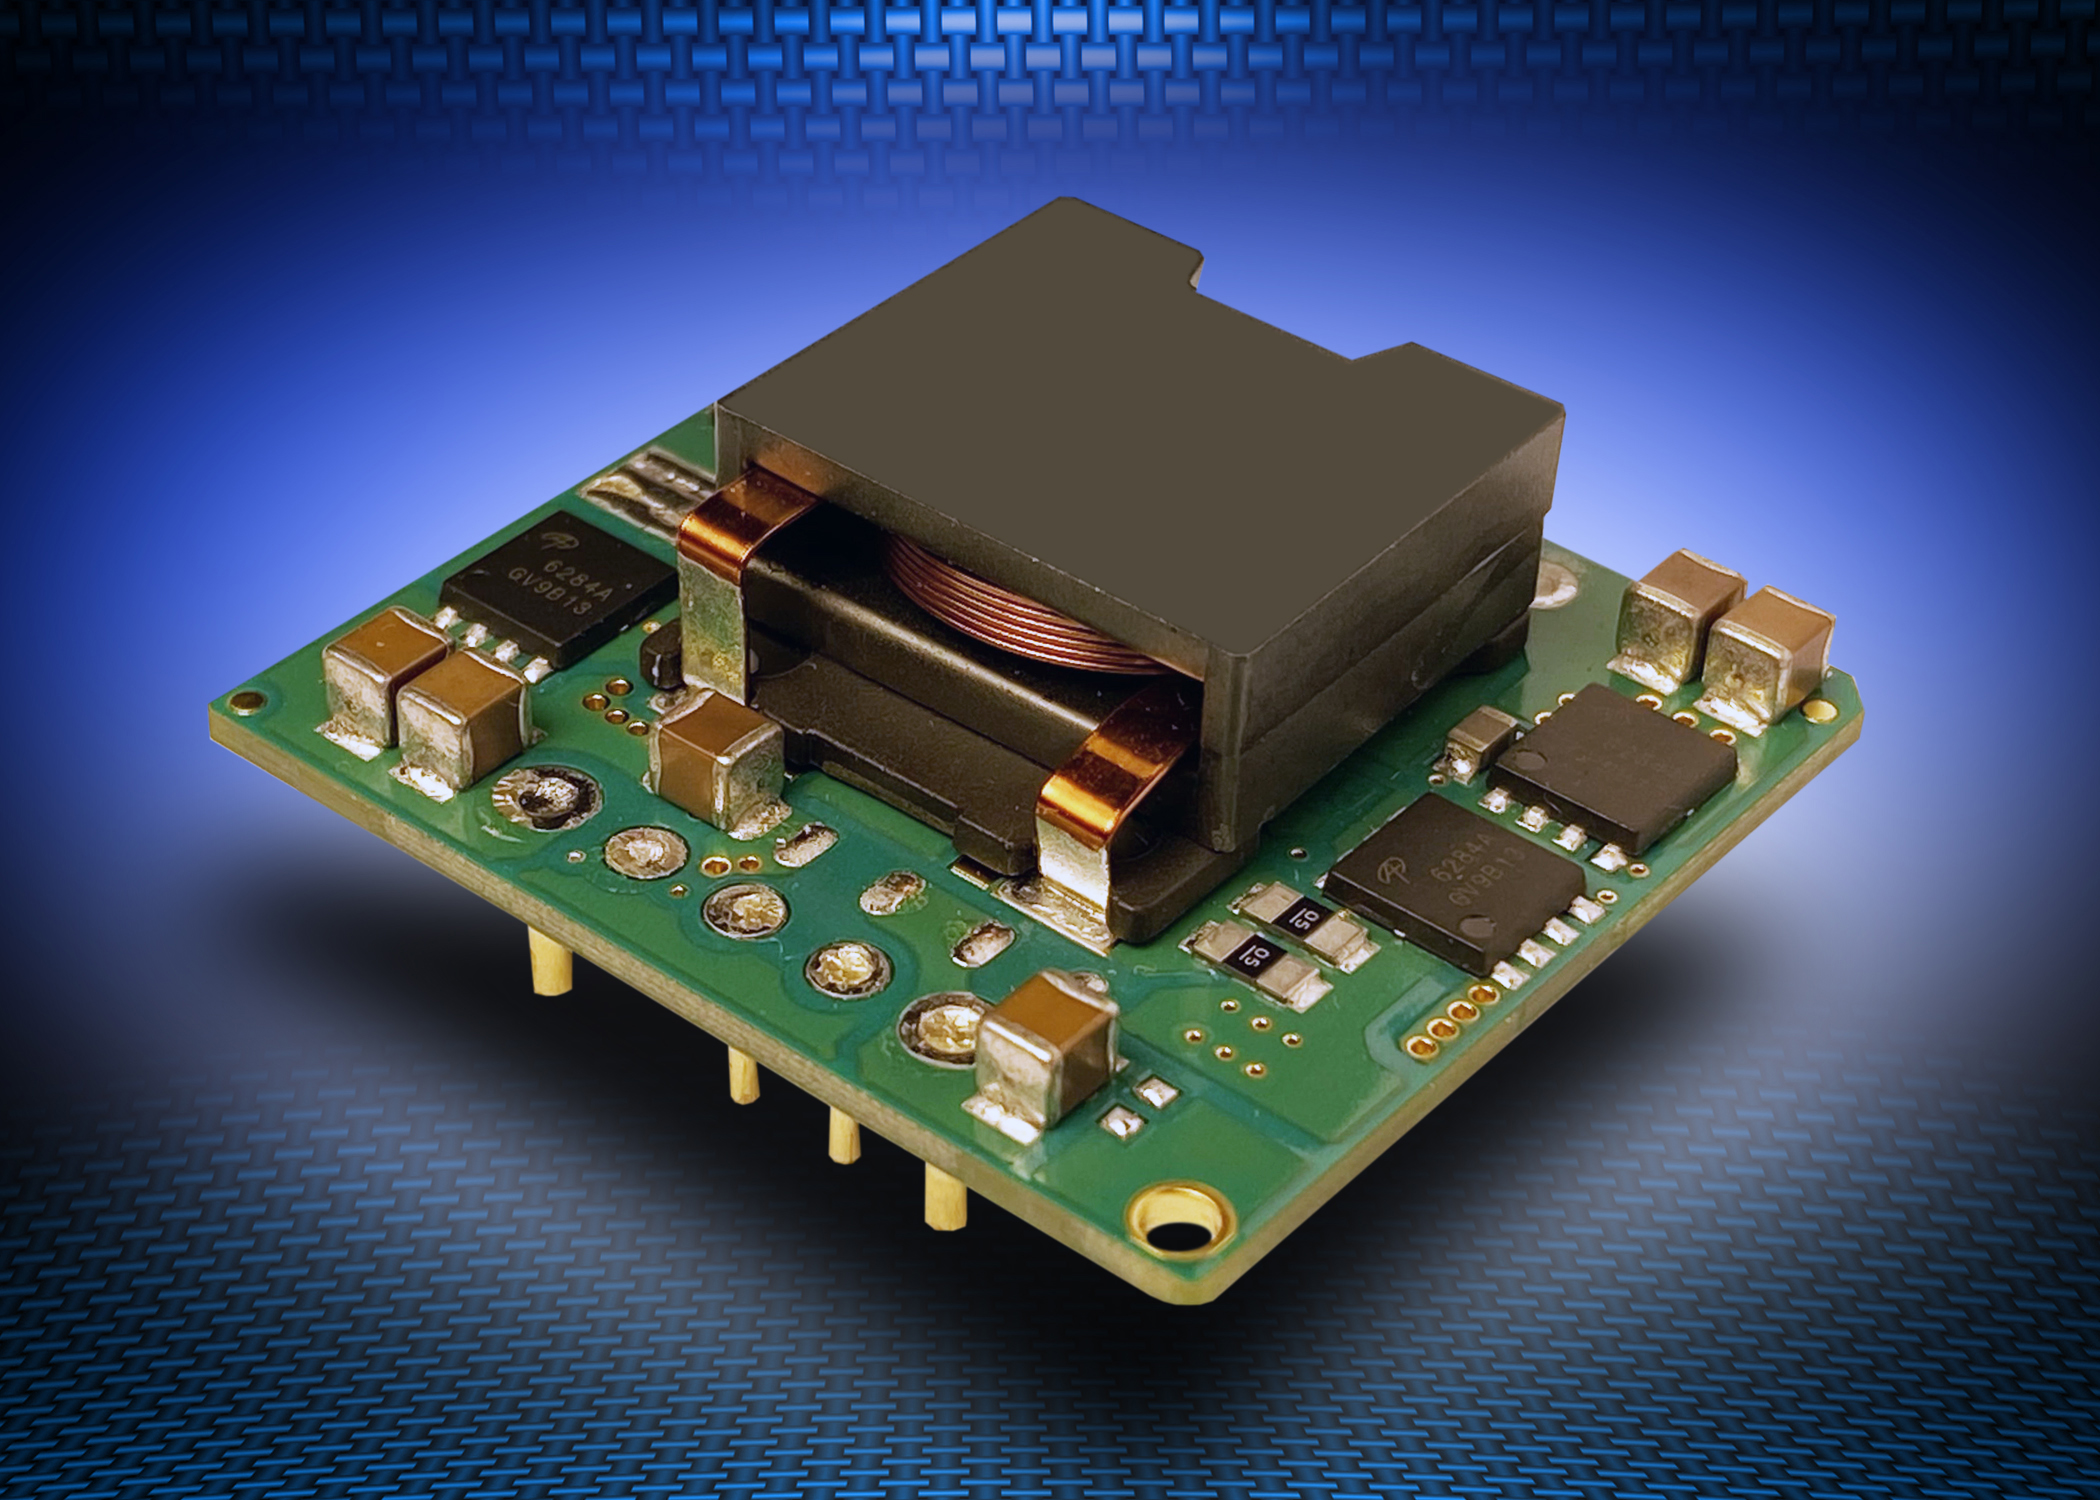 Buck-Boost DC-DC Converters Have Output Adjustment to 48V